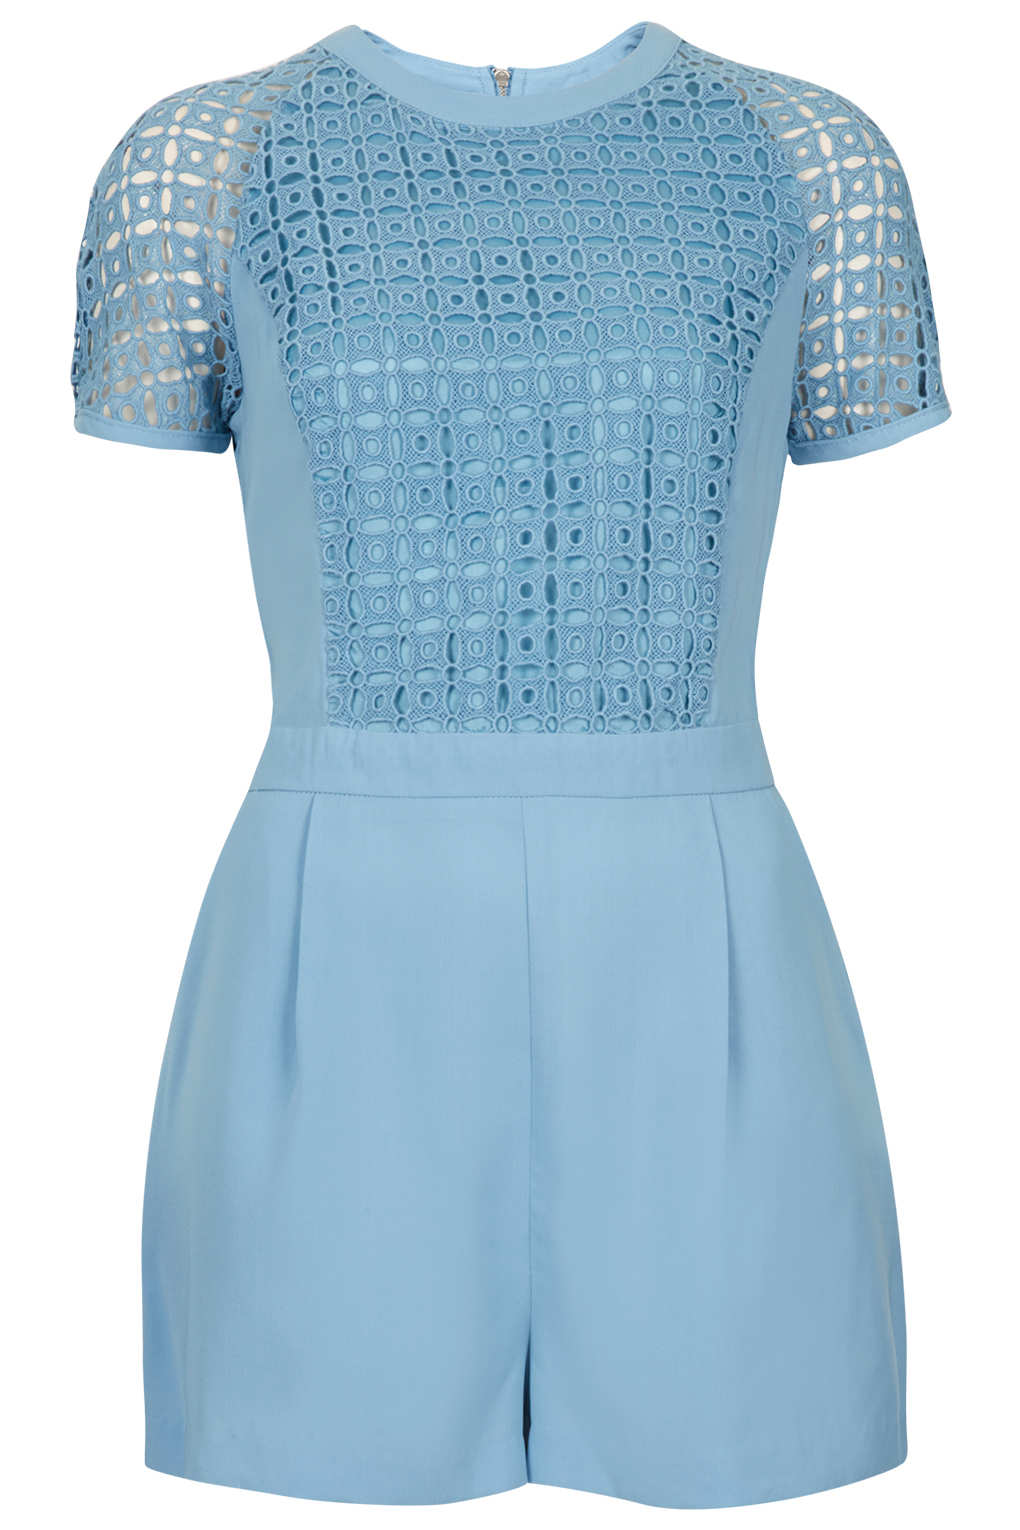 ccf440b48e TOPSHOP Cutwork T-Shirt Playsuit in Blue - Lyst